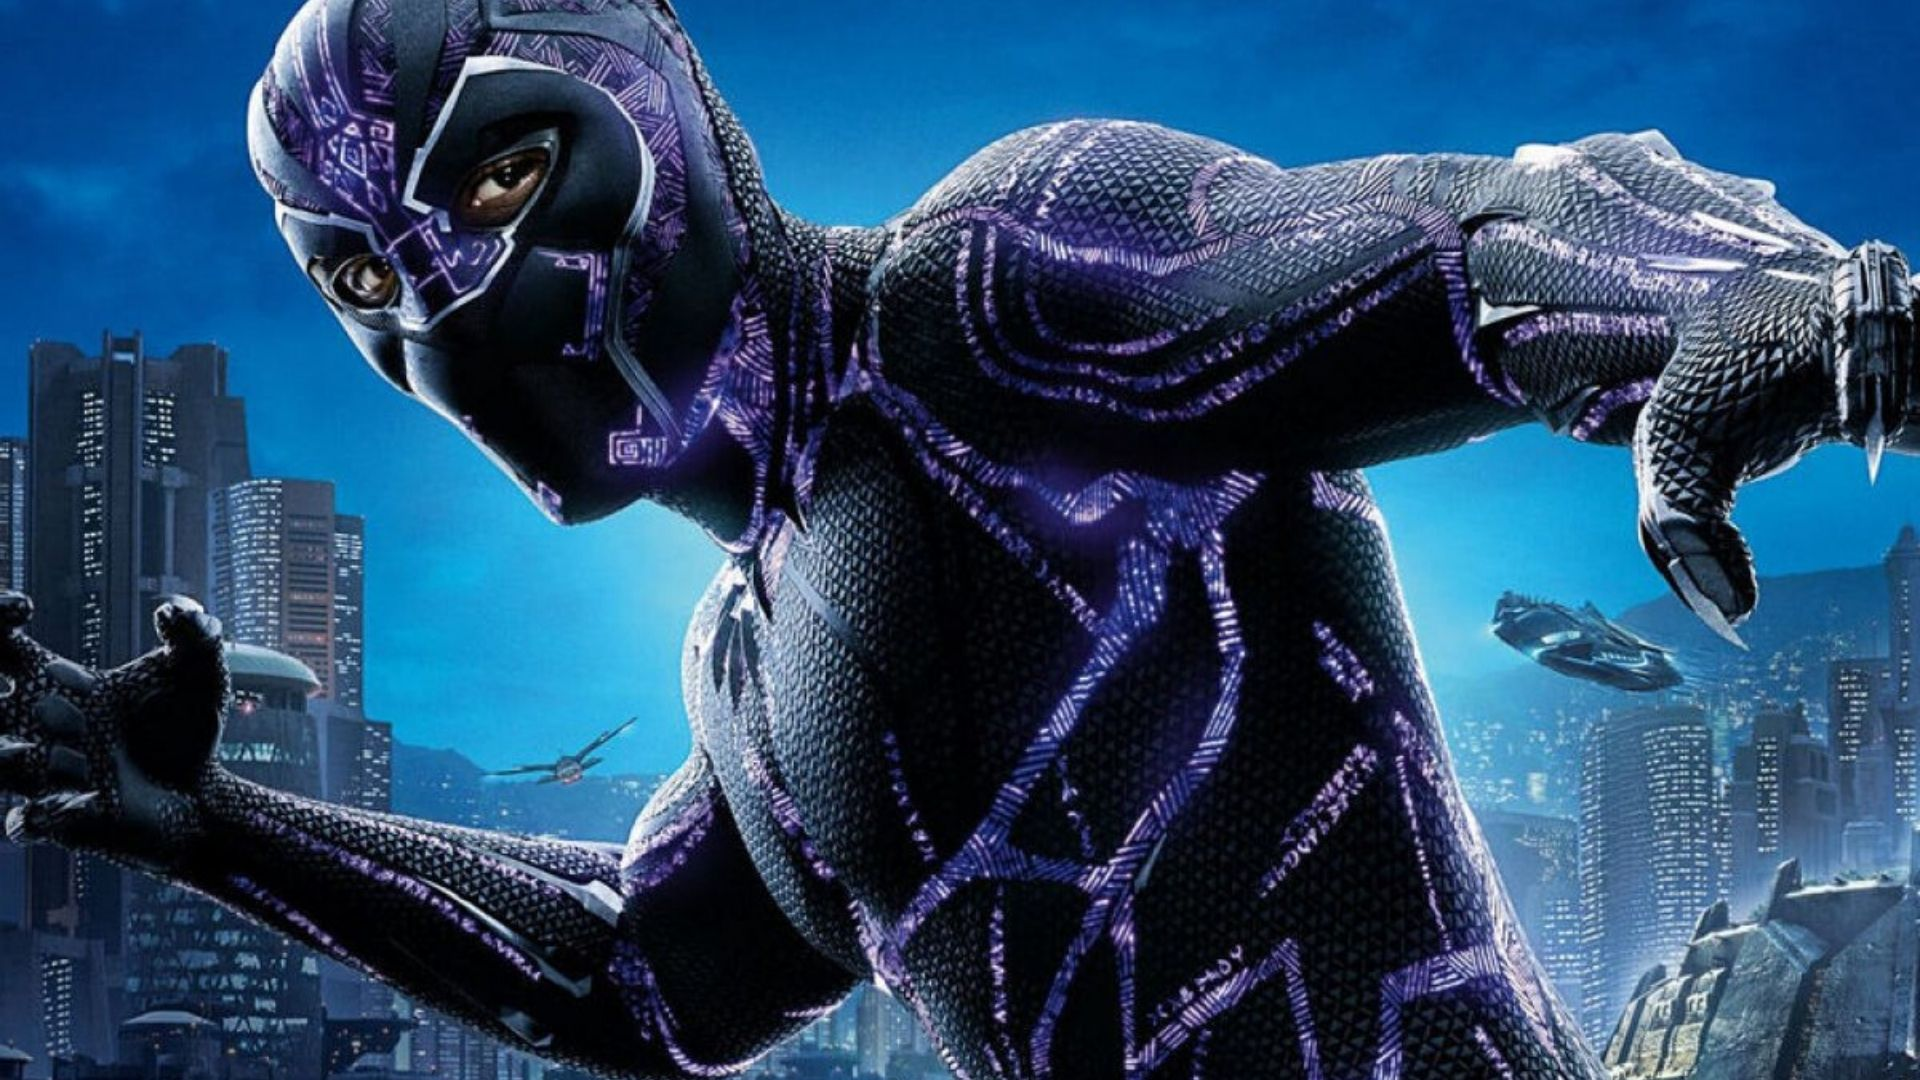 """Mcu: """"Black Panther 2"""" Is Coming: Check Here Release Date, Cast, & Everything We Know So Far"""